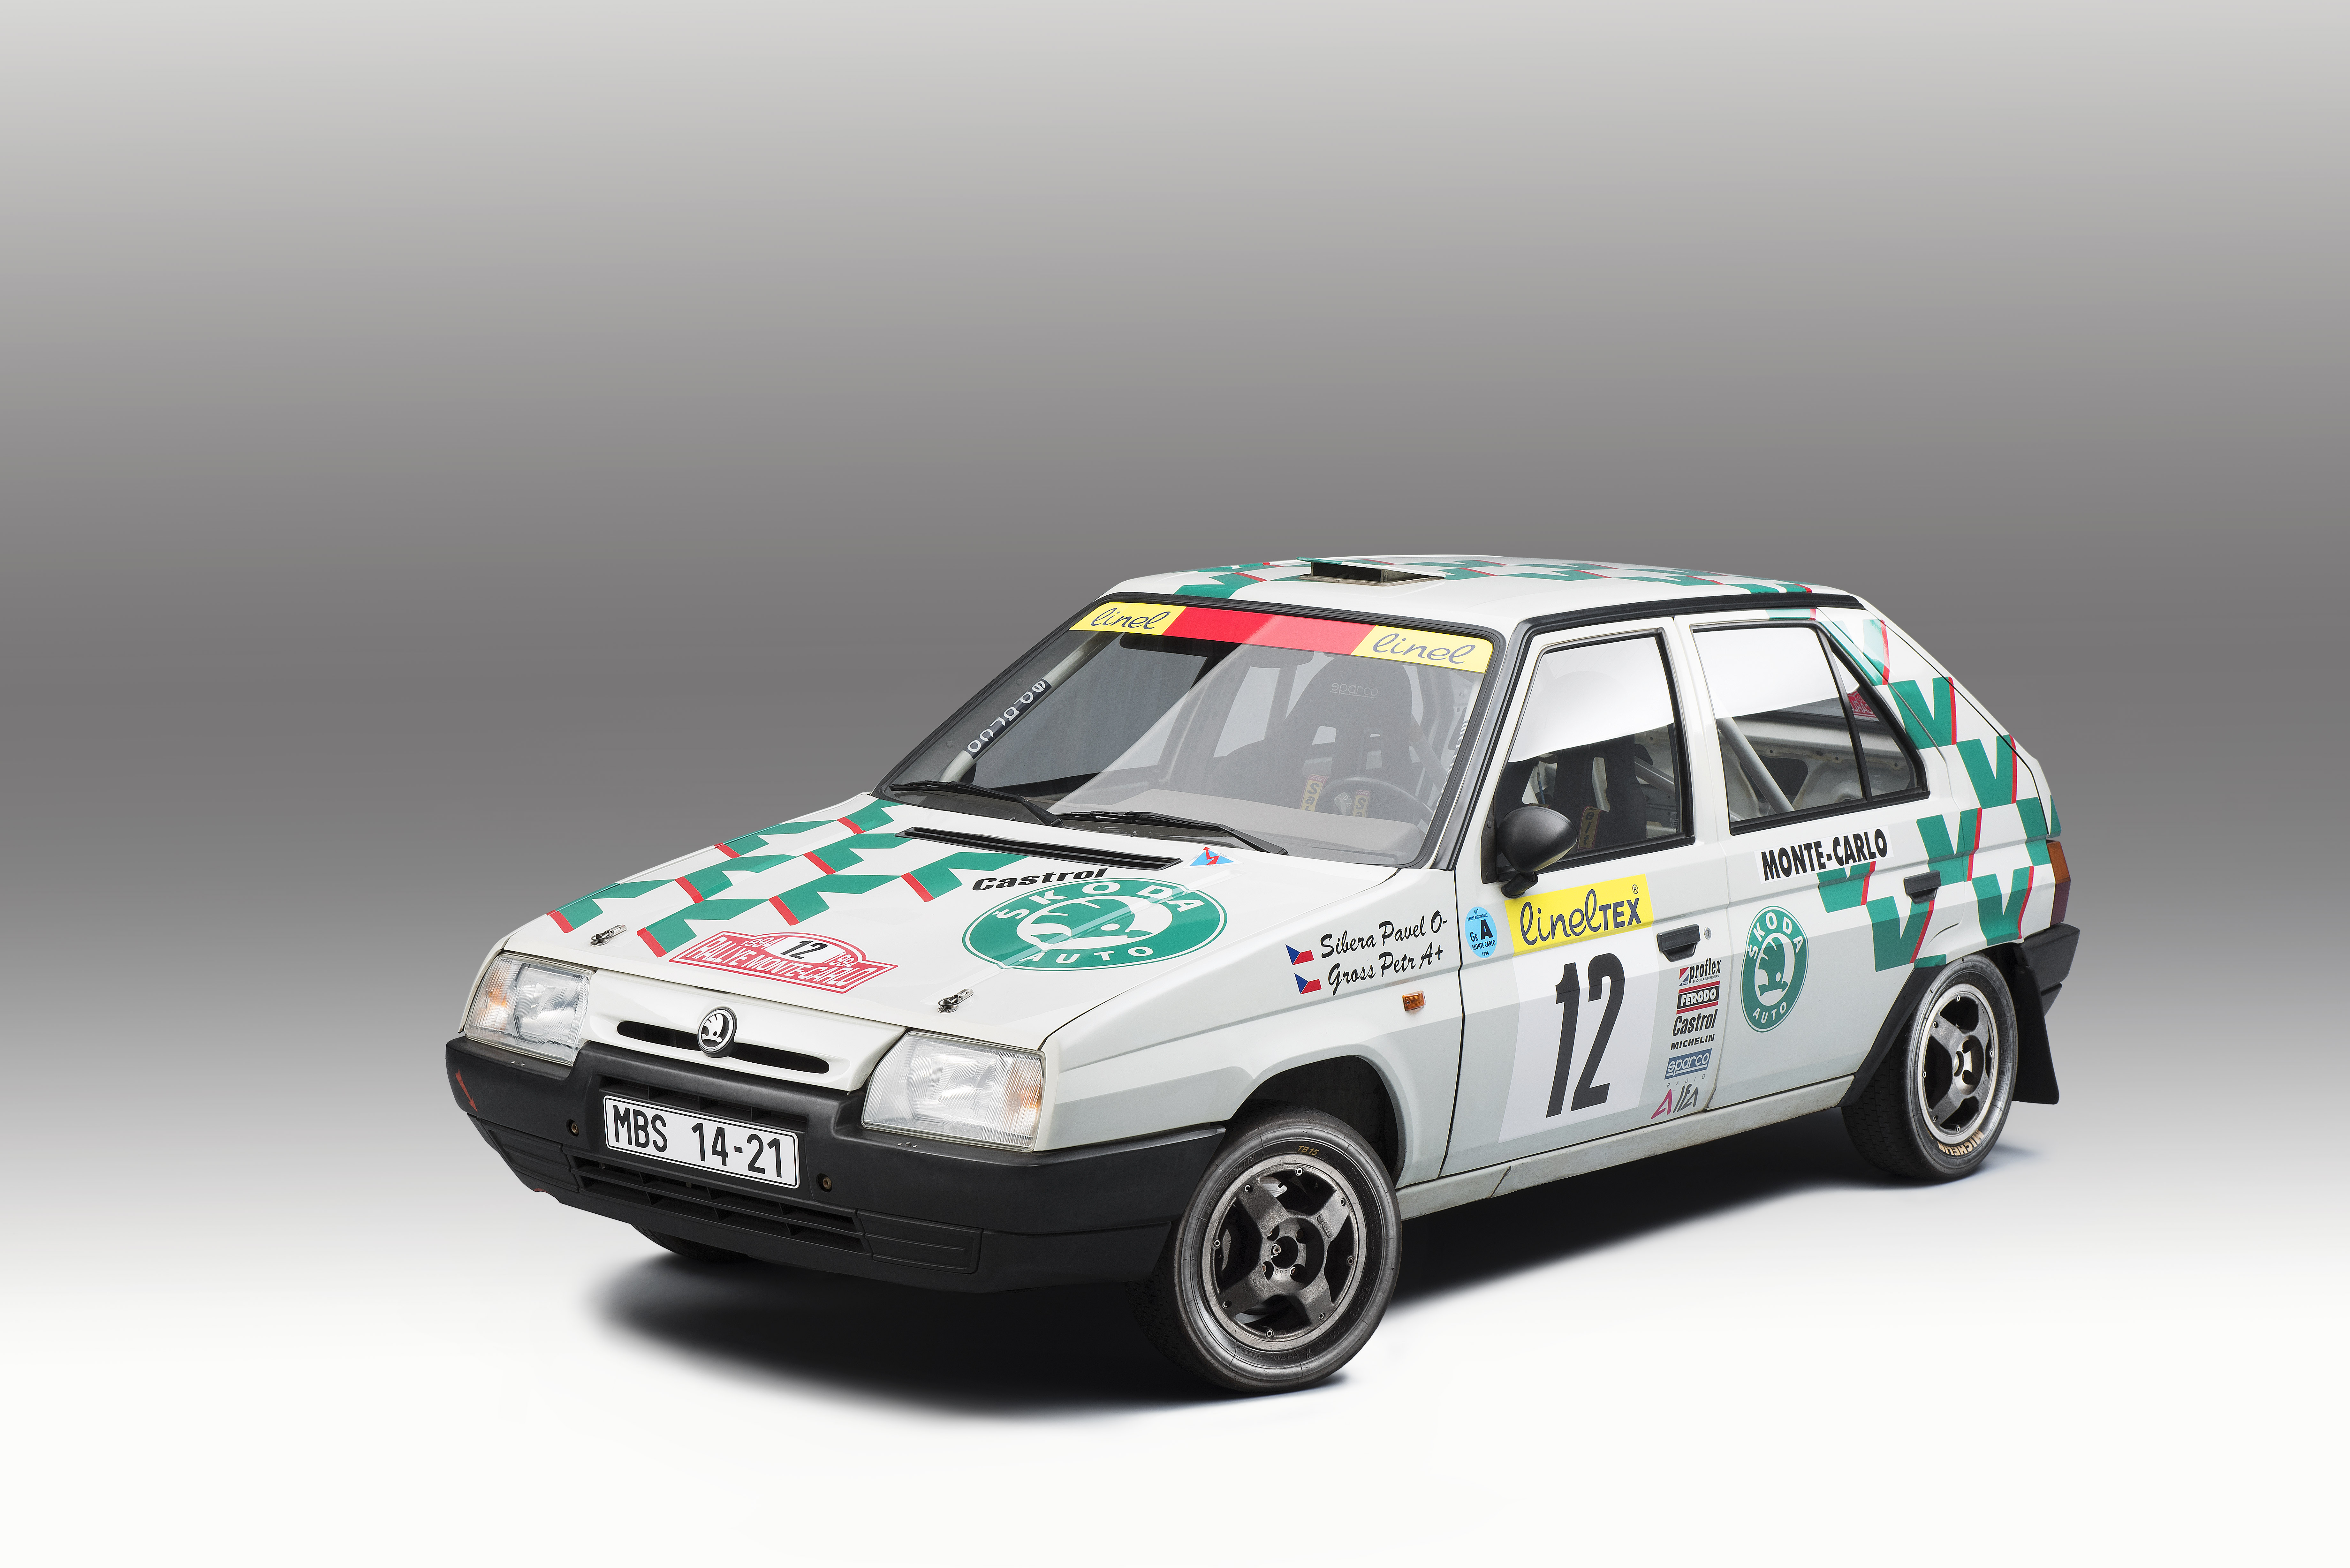 Motorsport versions of the SKODA FAVORIT (1989): All different – and yet familiar - Image 5